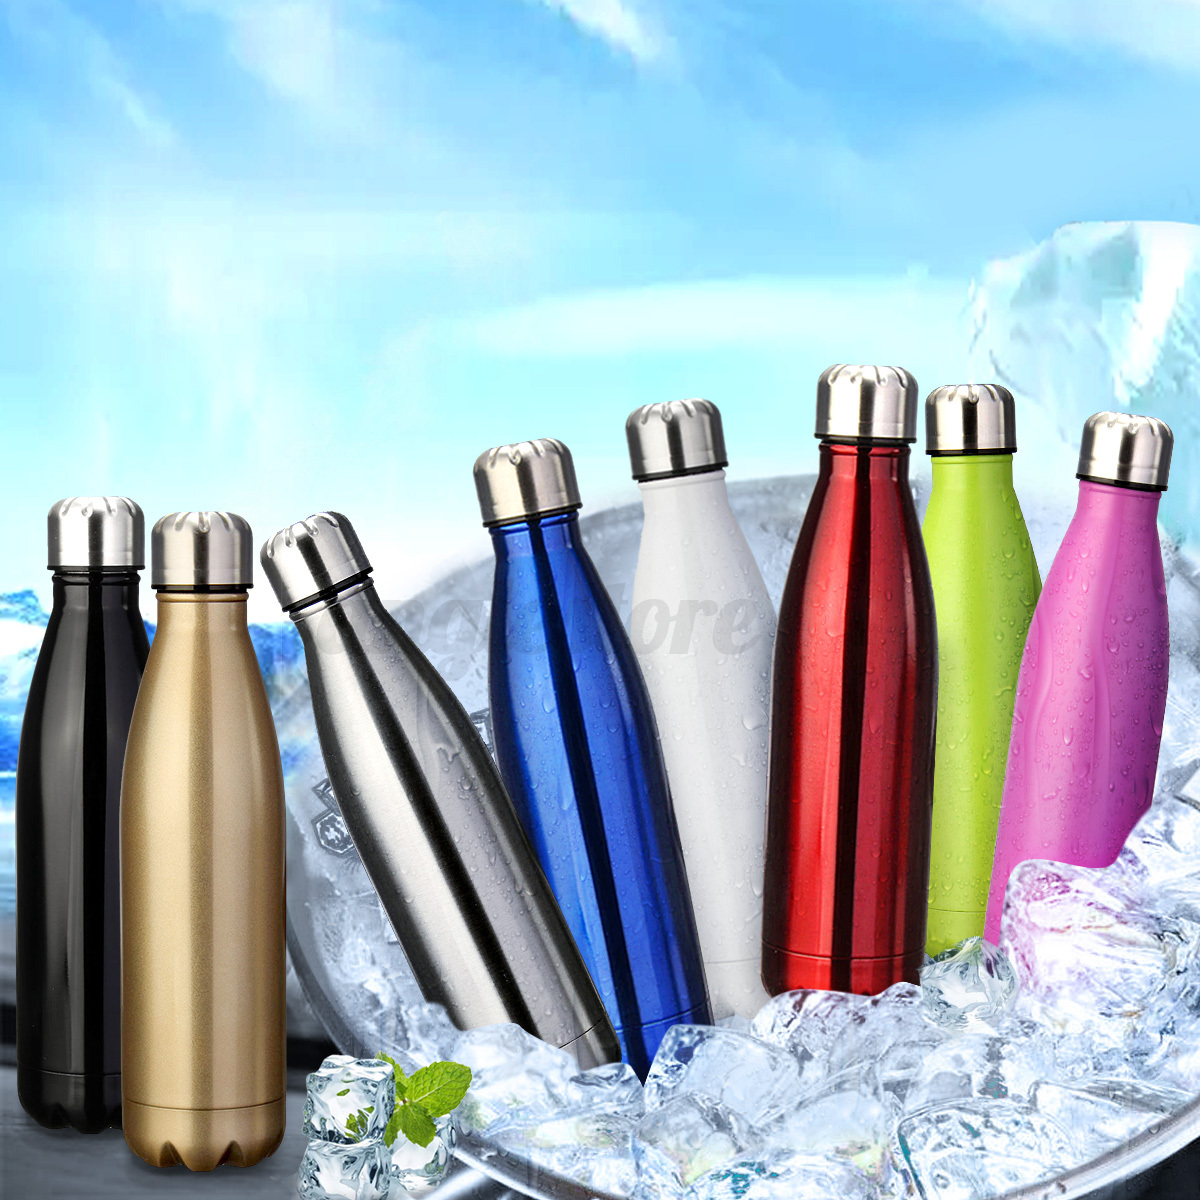 500ML-Stainless-Steel-Double-Wall-Vacuum-Insulated-Bottle-Water-Flask-Sport miniature 2